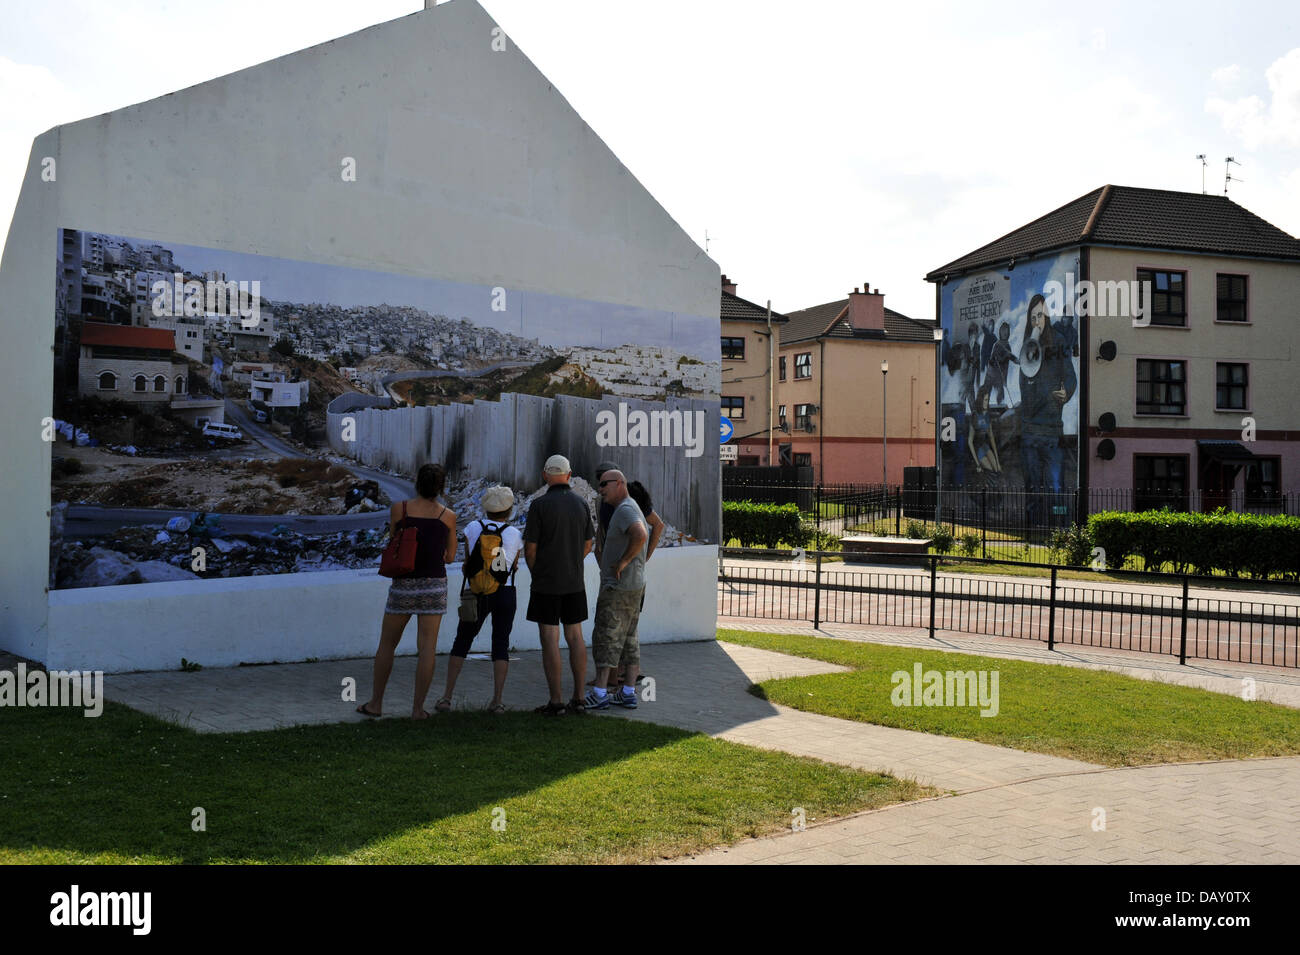 Derry/Londonderry, NI, UK. 20th July 2013. The iconic Free Derry Wall, in the Bogside, was transformed this weekend - Stock Image